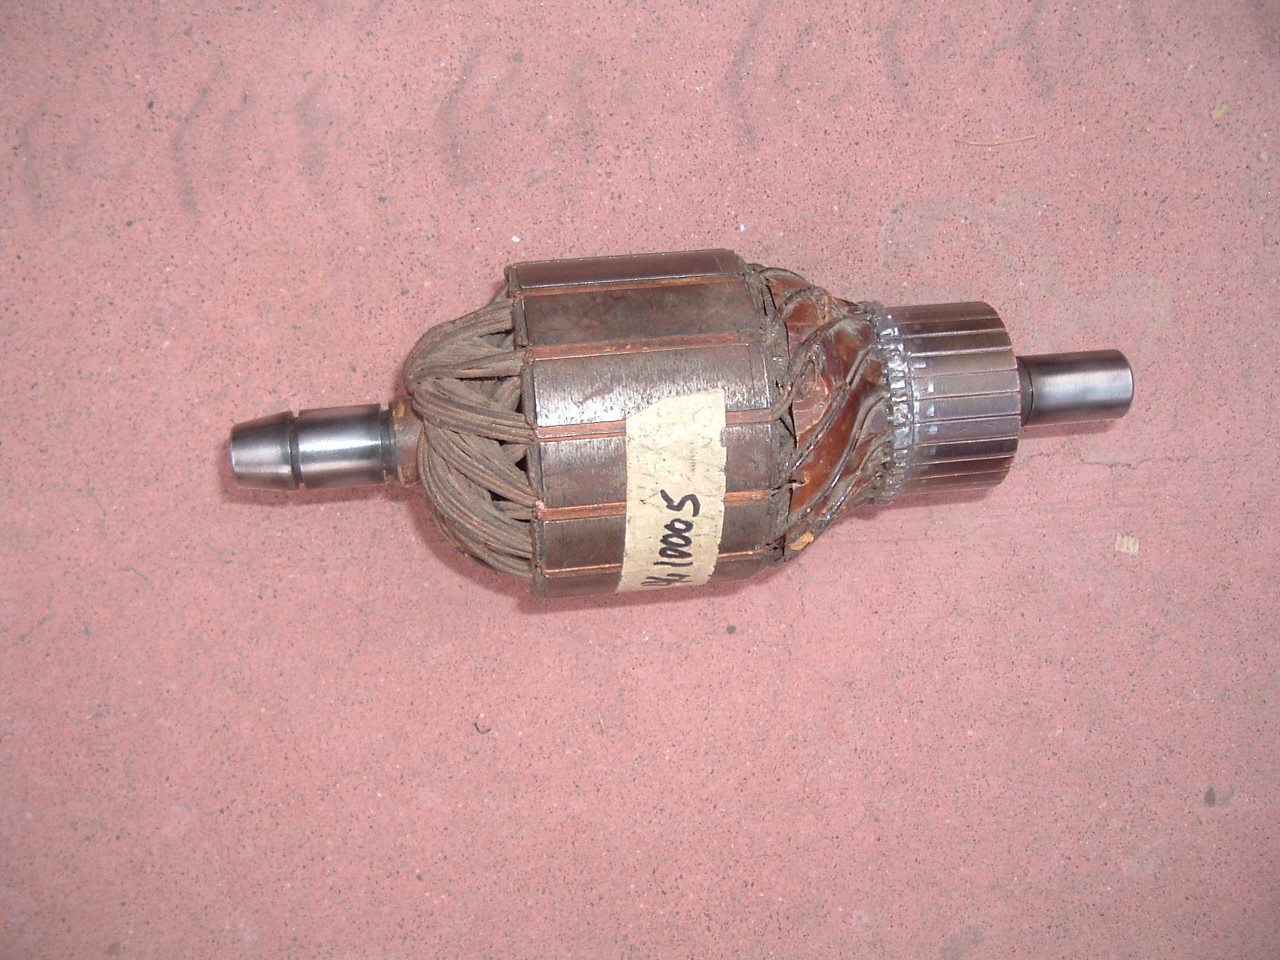 1933 34 35 36 36 ford generator armature # 46-10005 (z 4610005)